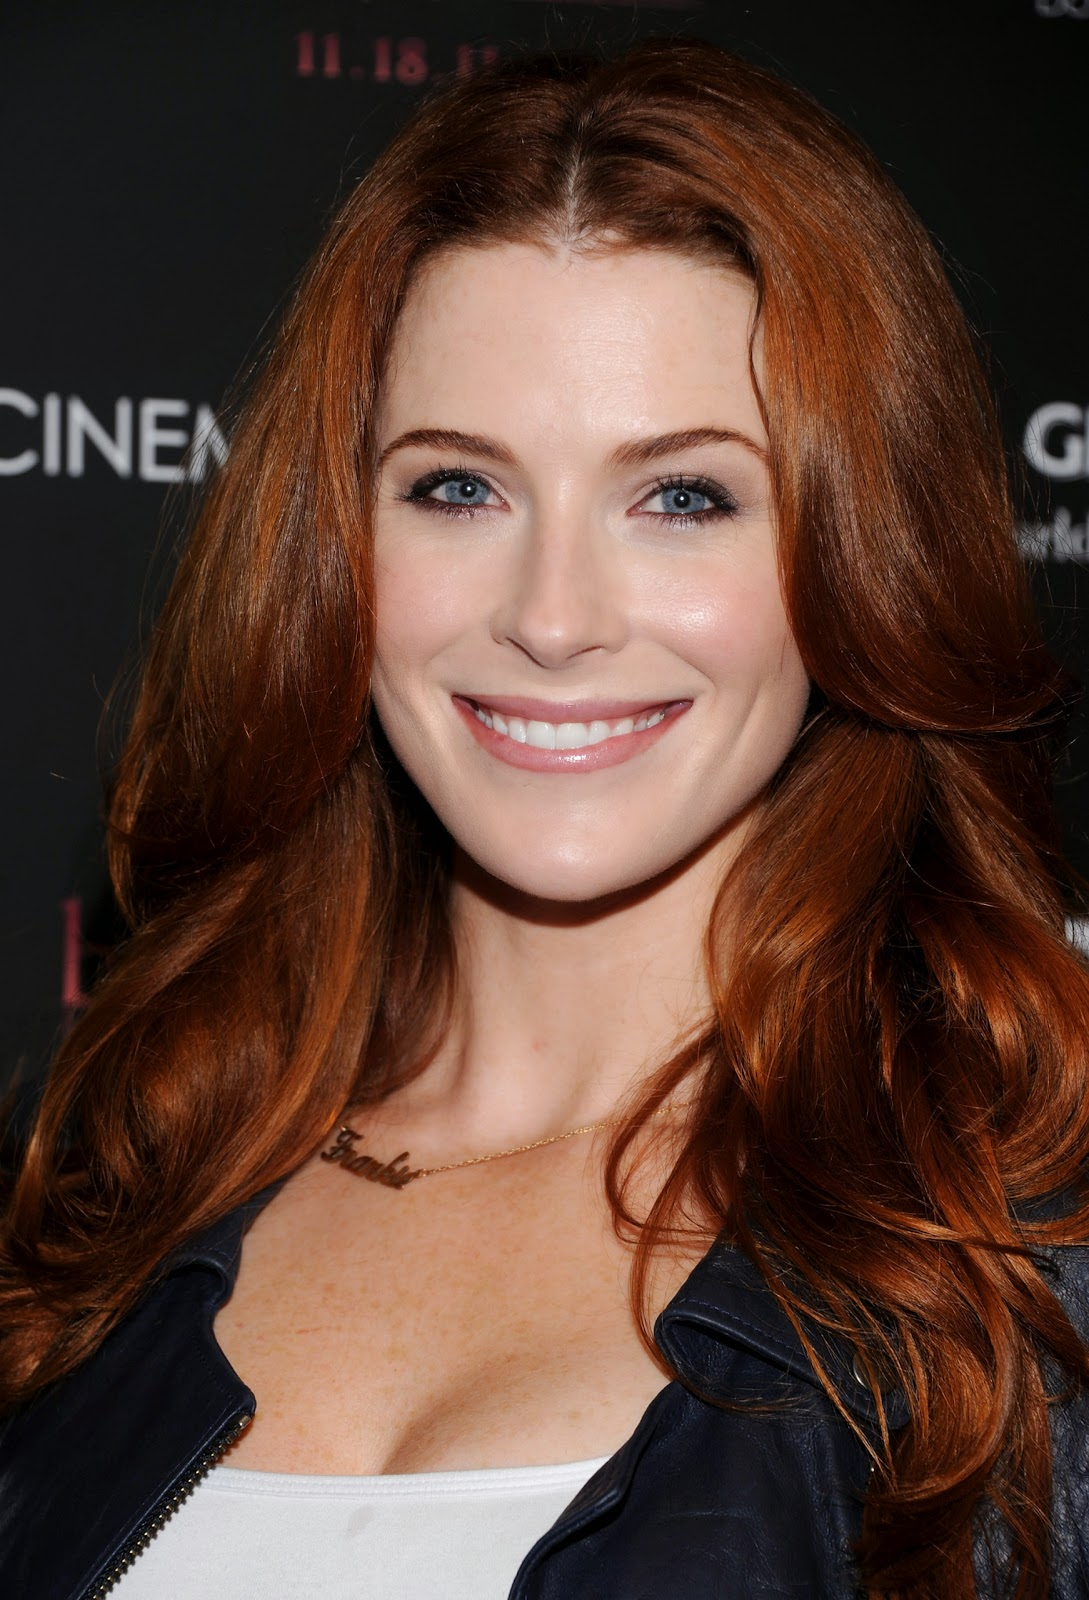 Bridget Catherine Regan Hd Pictures Hd Wallpapers Of